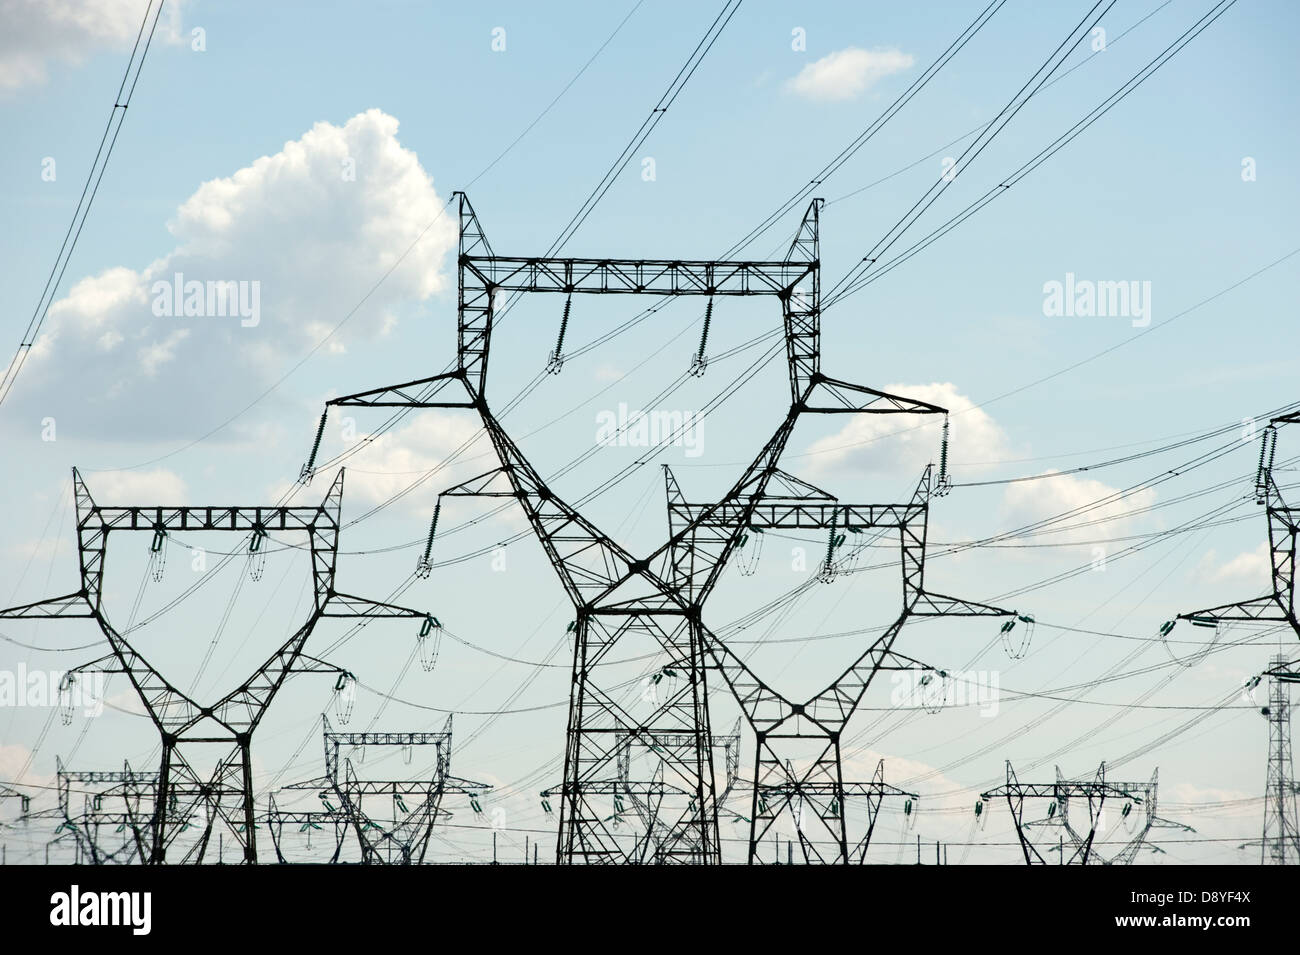 Electricity Cables Power Grid Sky Need - Stock Image